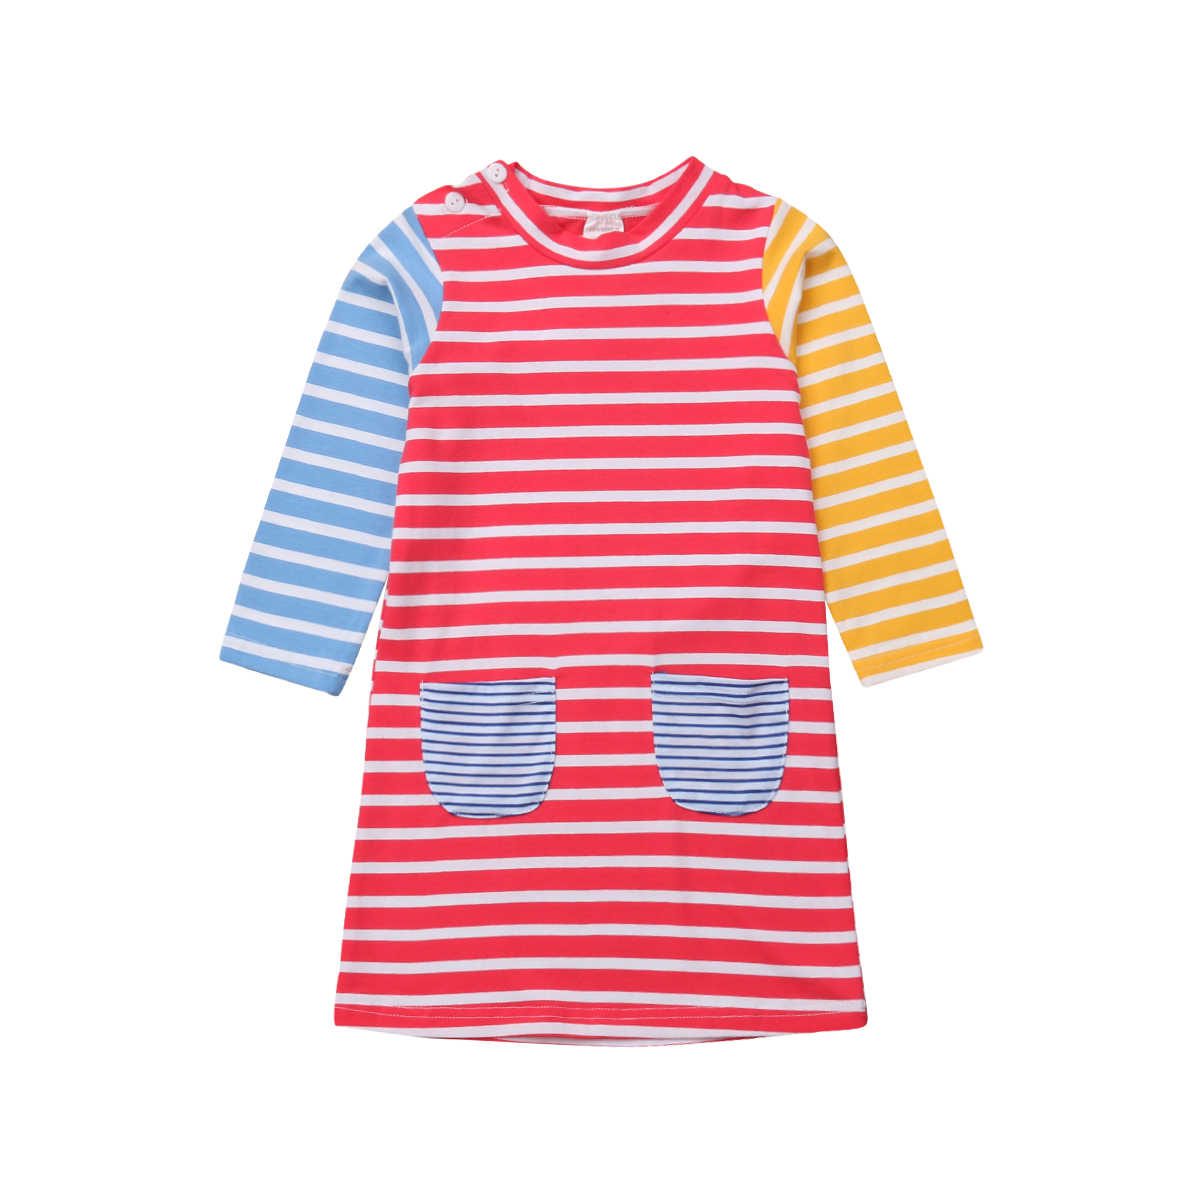 Toddler Kids Baby Girl Difference Color Long Sleeve Stripe Pocket Cotton Party Dress Clothes